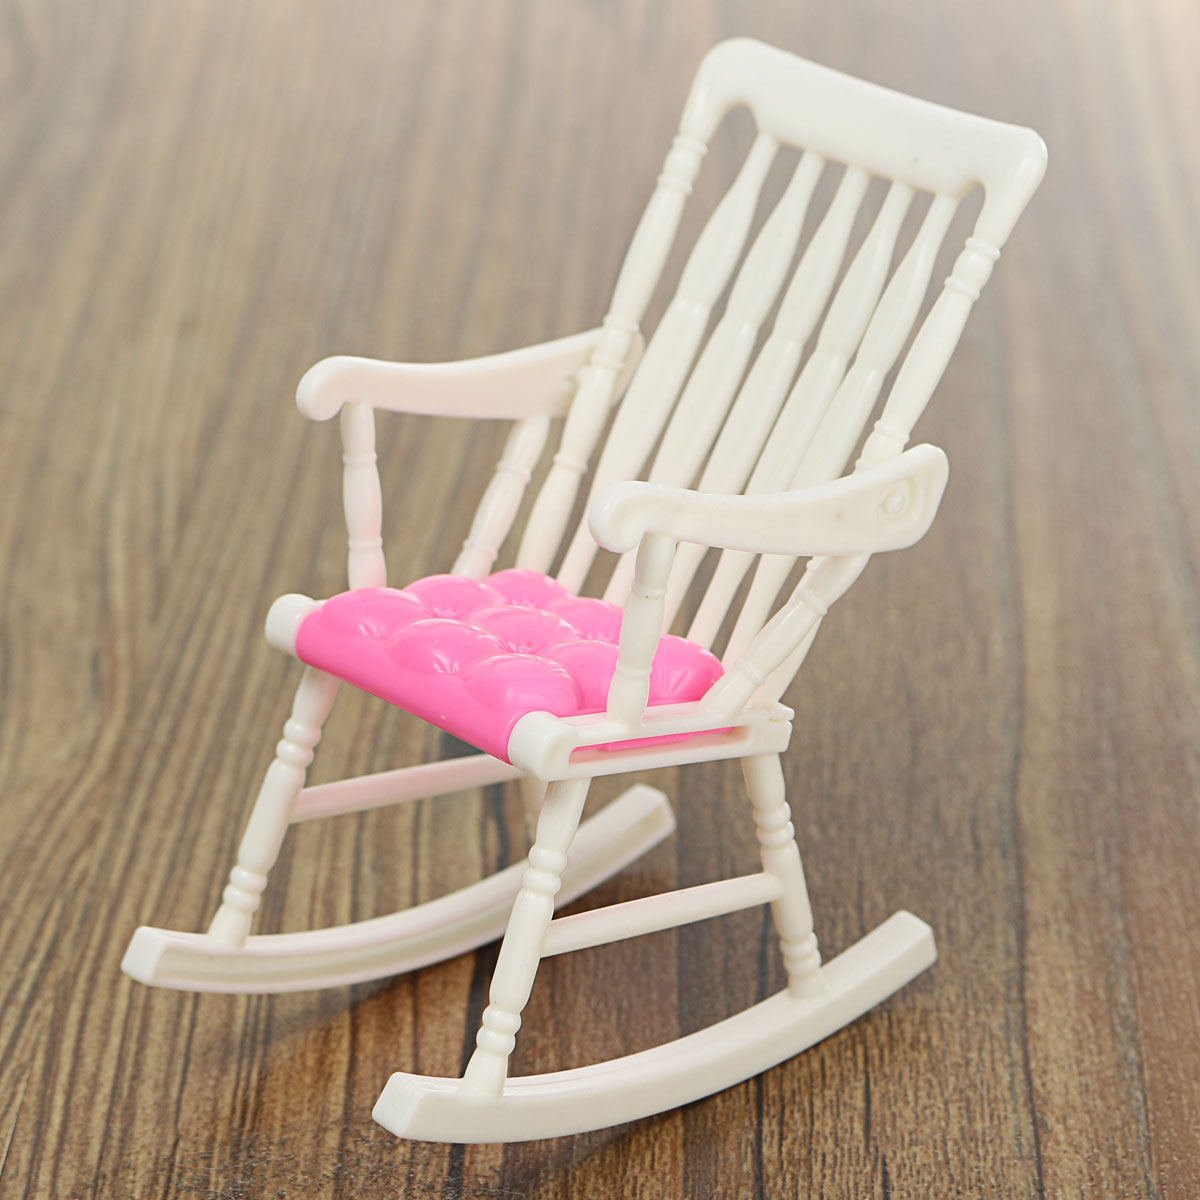 rocking chair with dildo plastic adirondack chairs walmart 1 pcs mini doll accessories for house